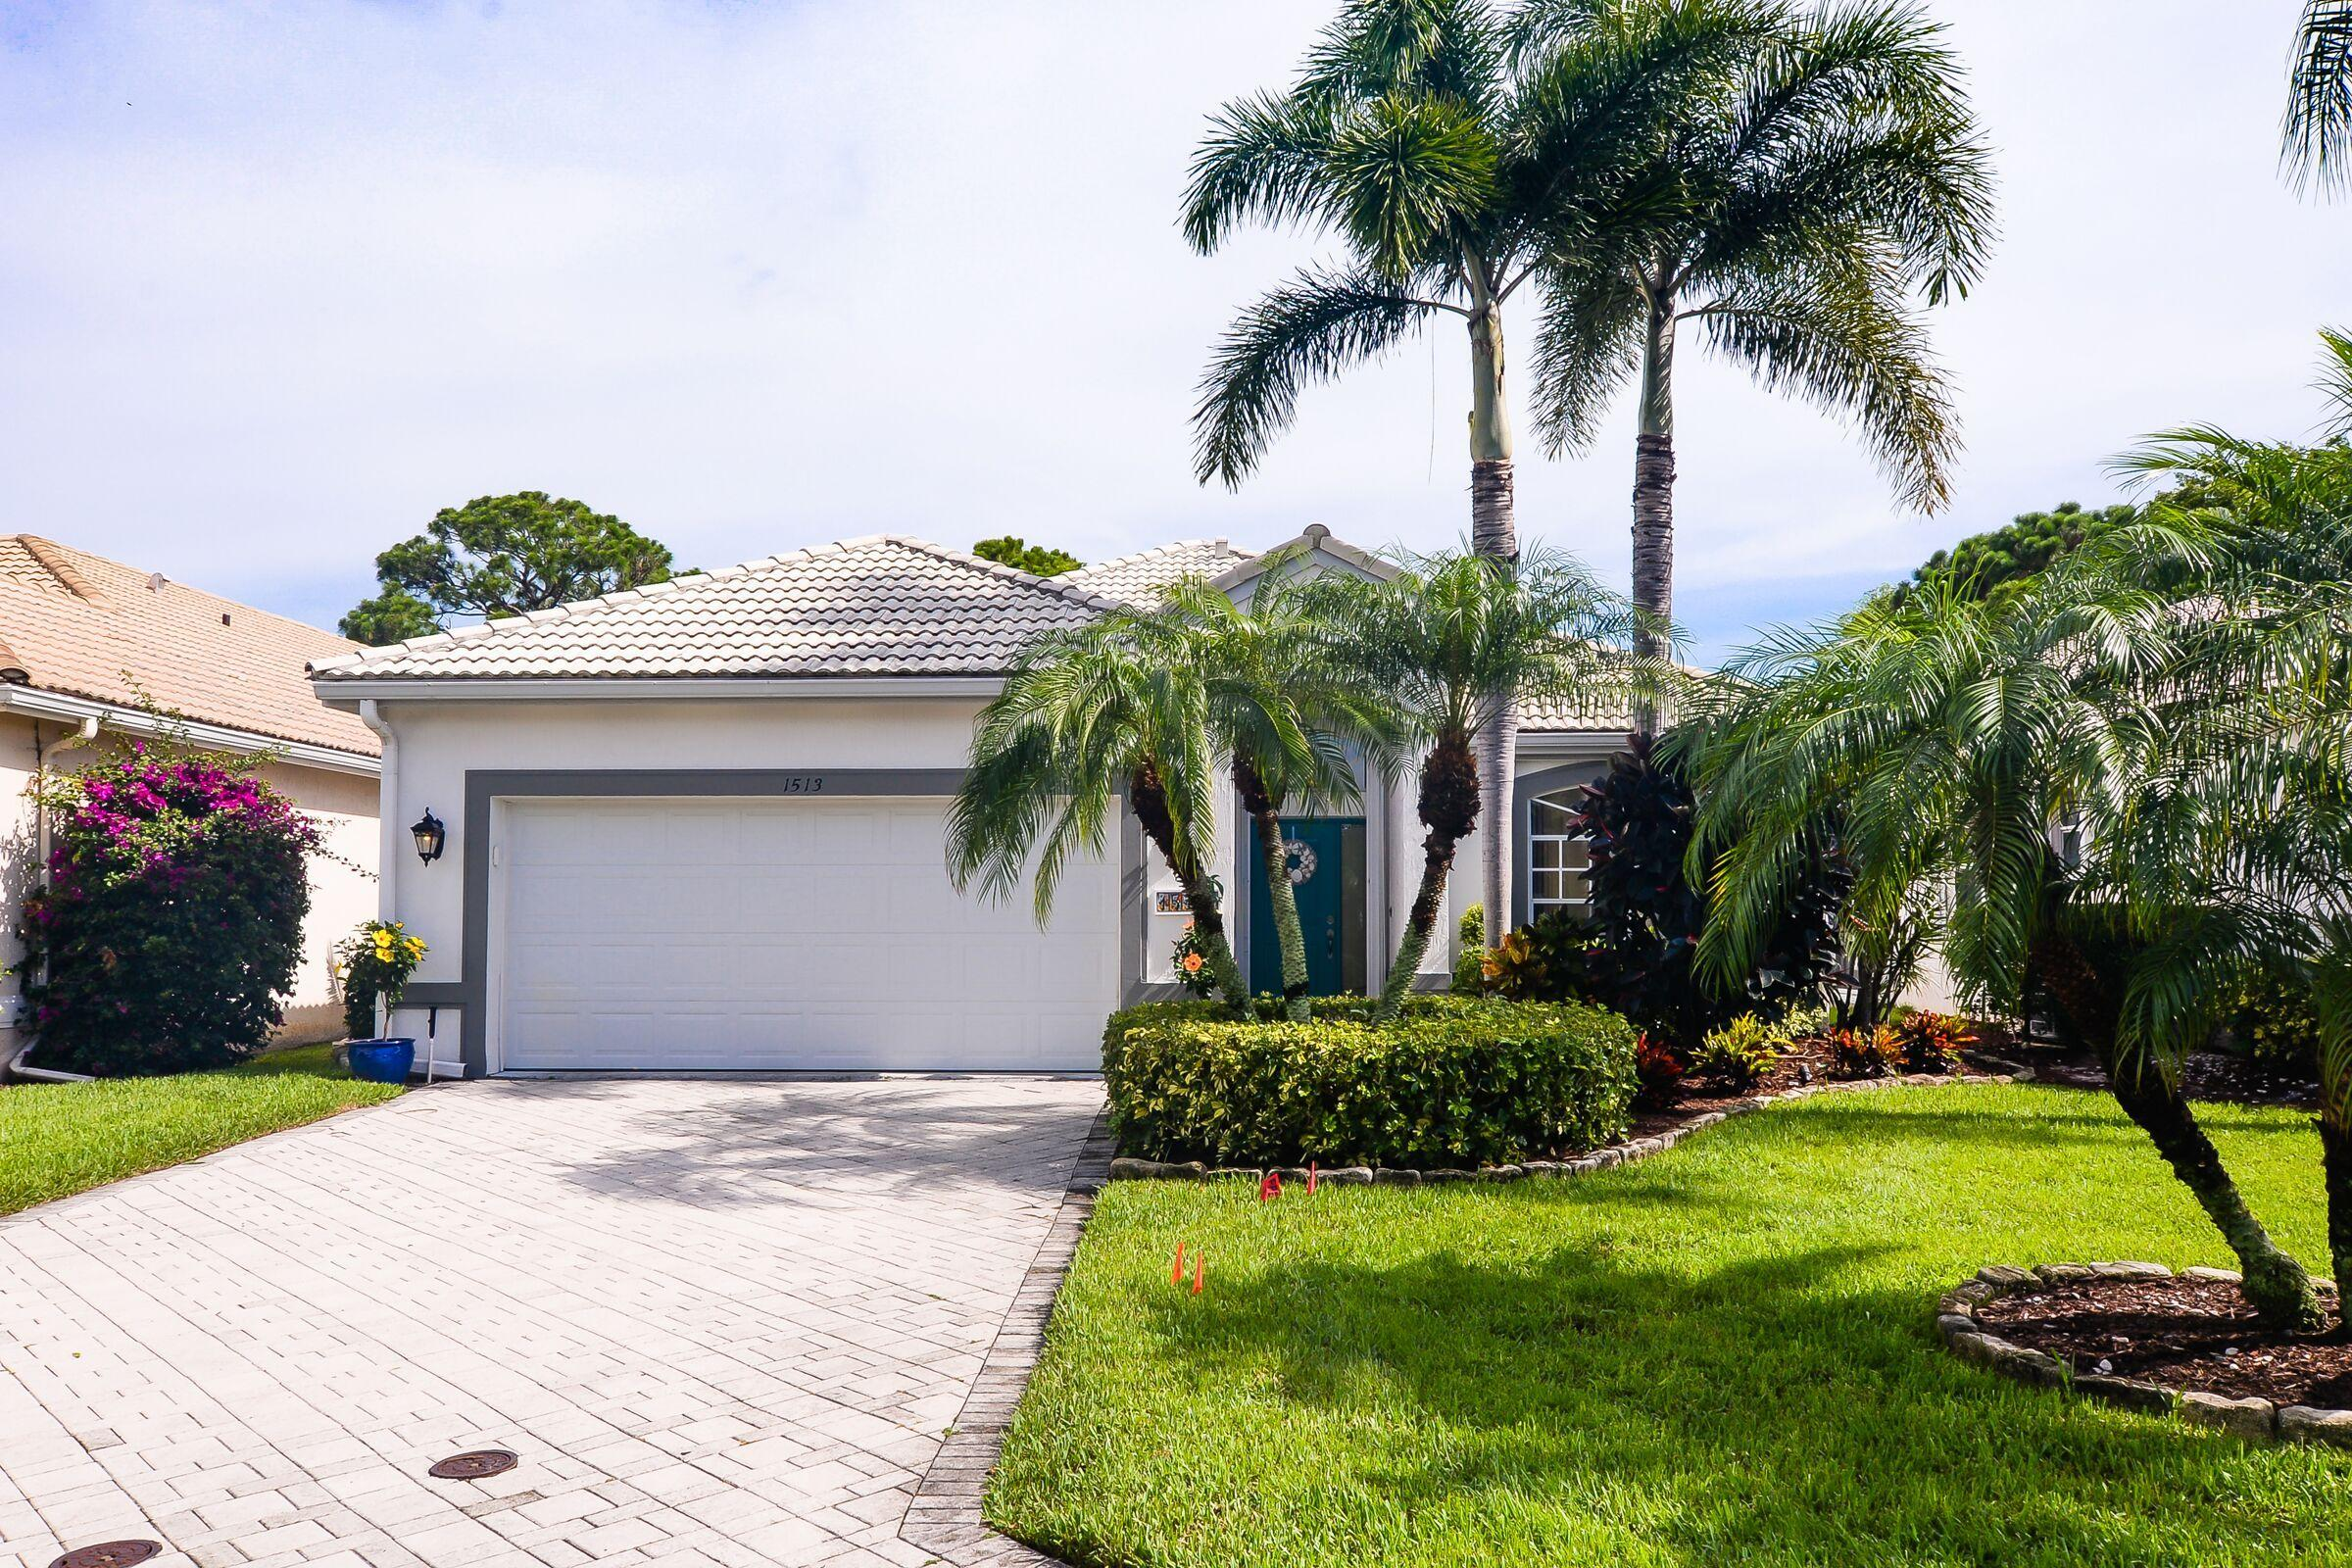 1513 SE Holyrood Lane 34952 - One of Port Saint Lucie Homes for Sale